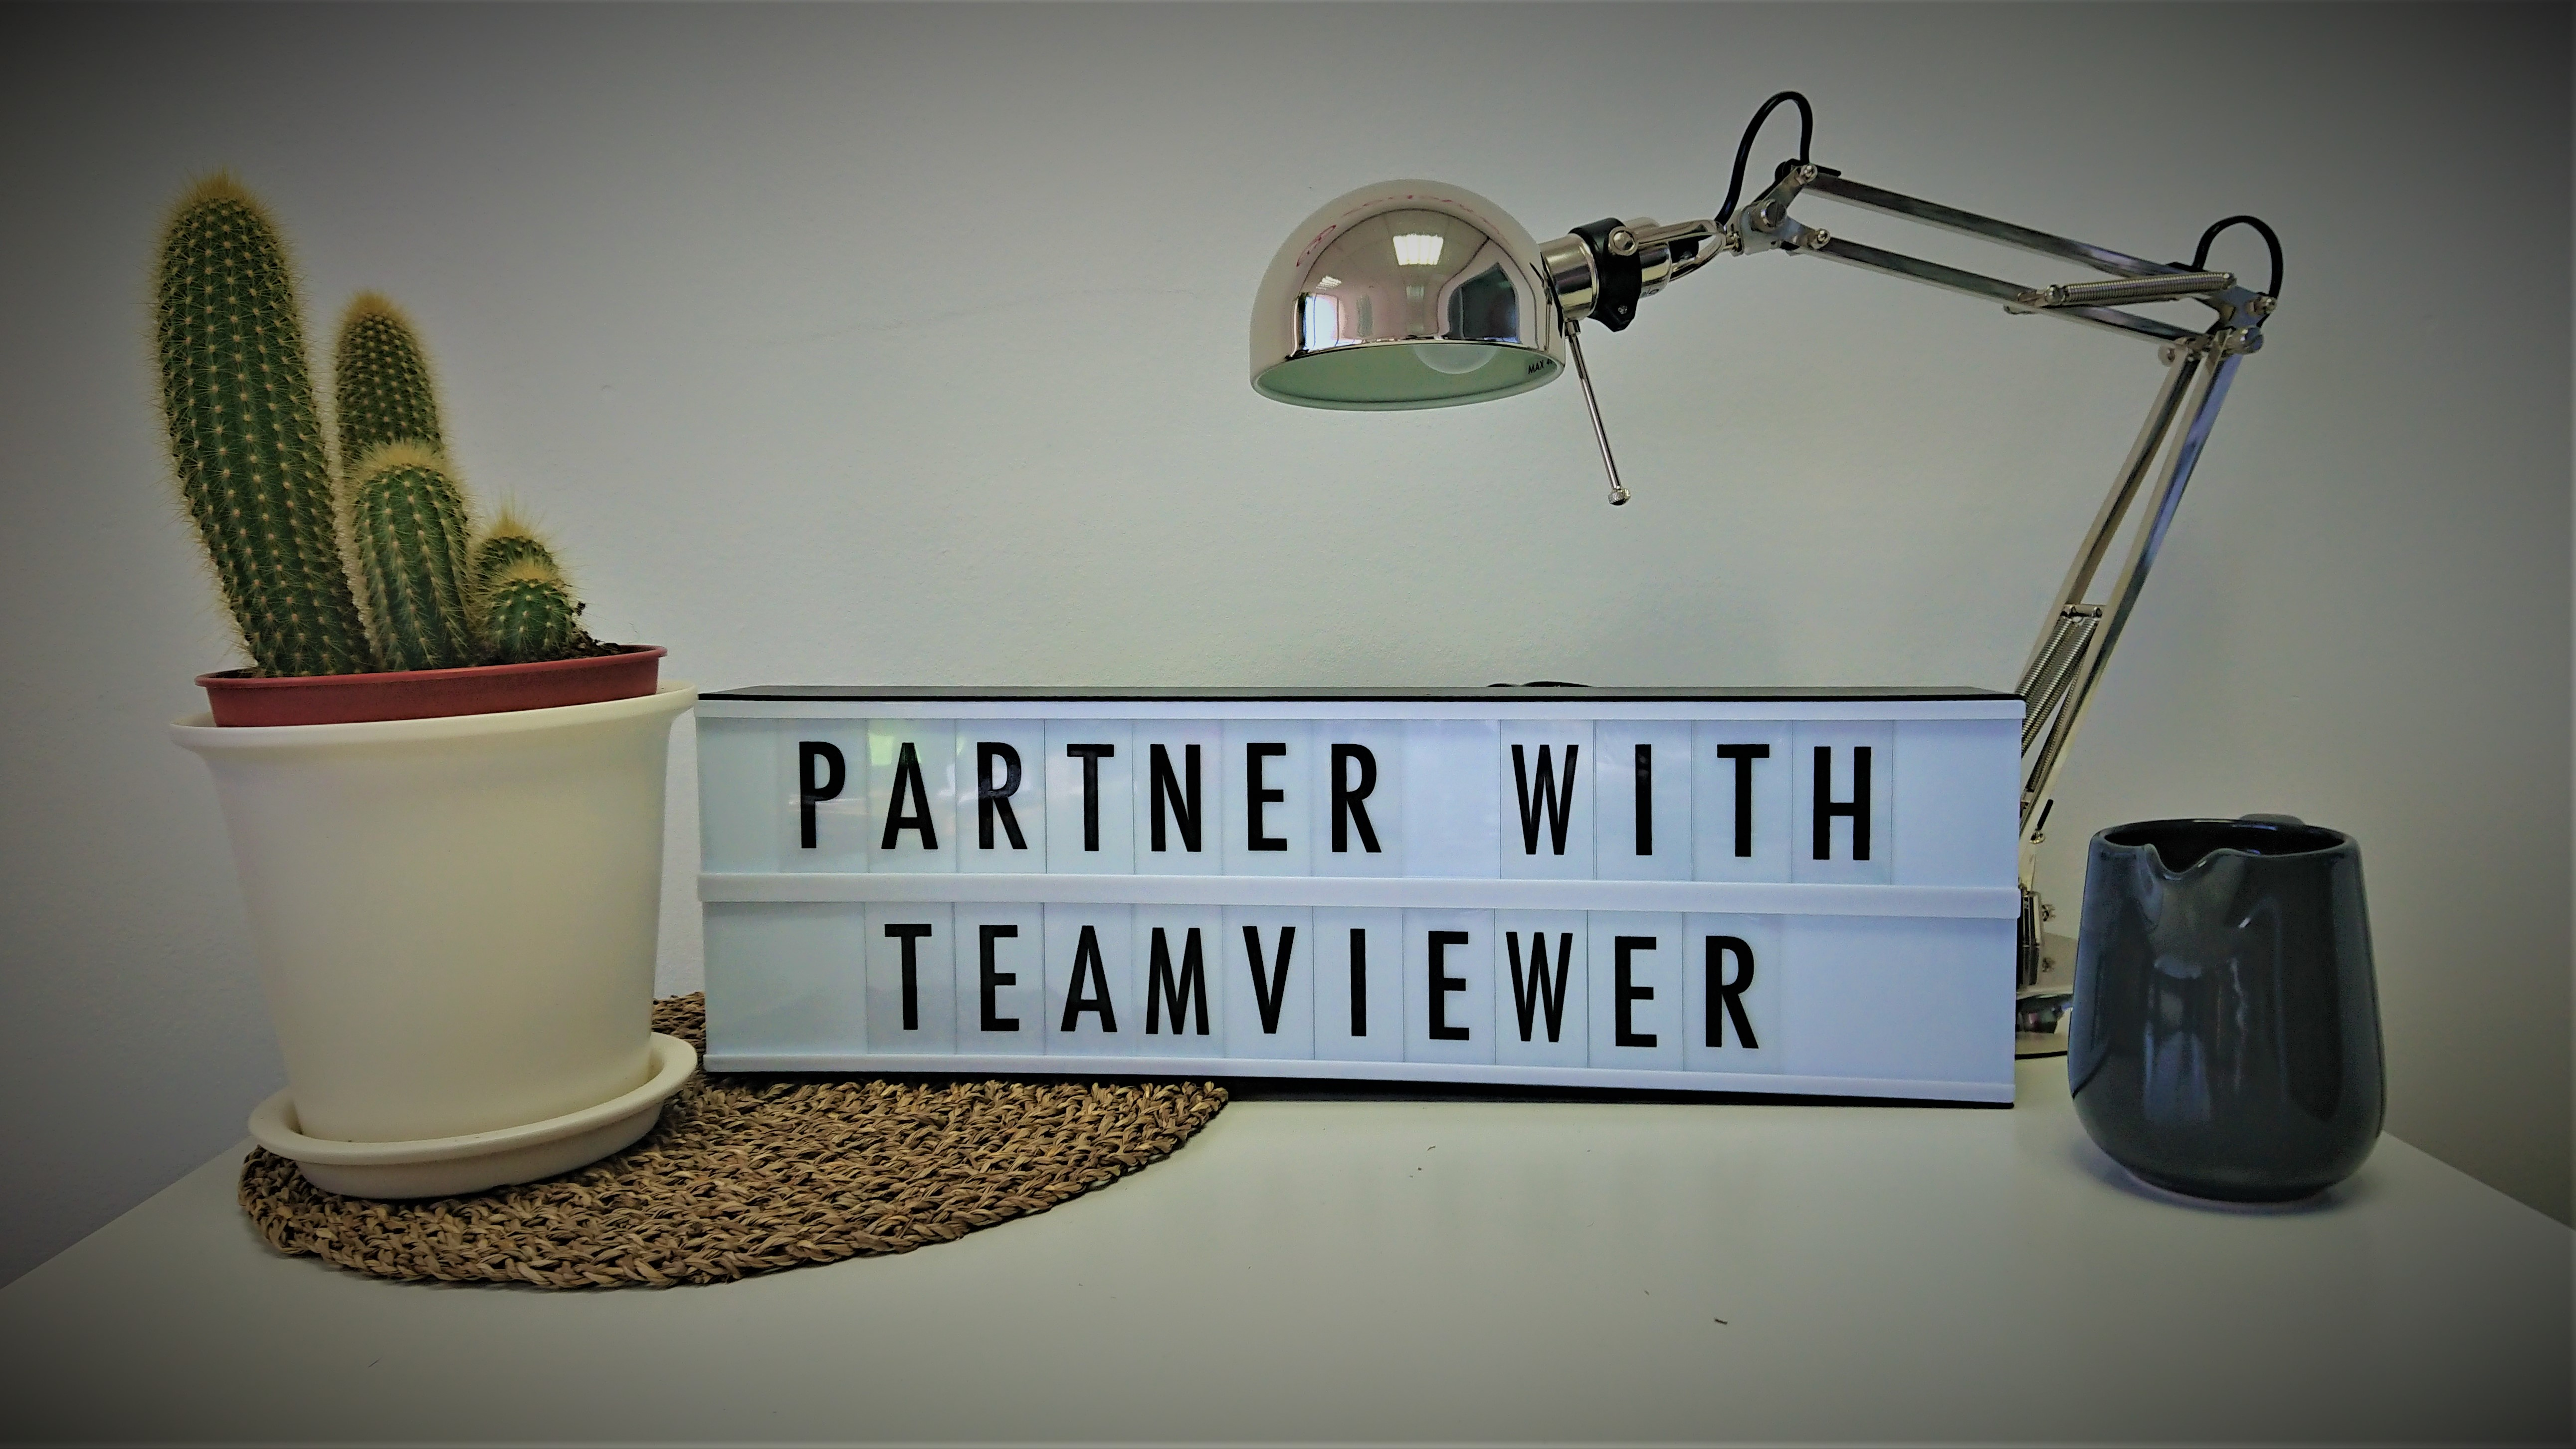 5 Reasons to Partner with TeamViewer